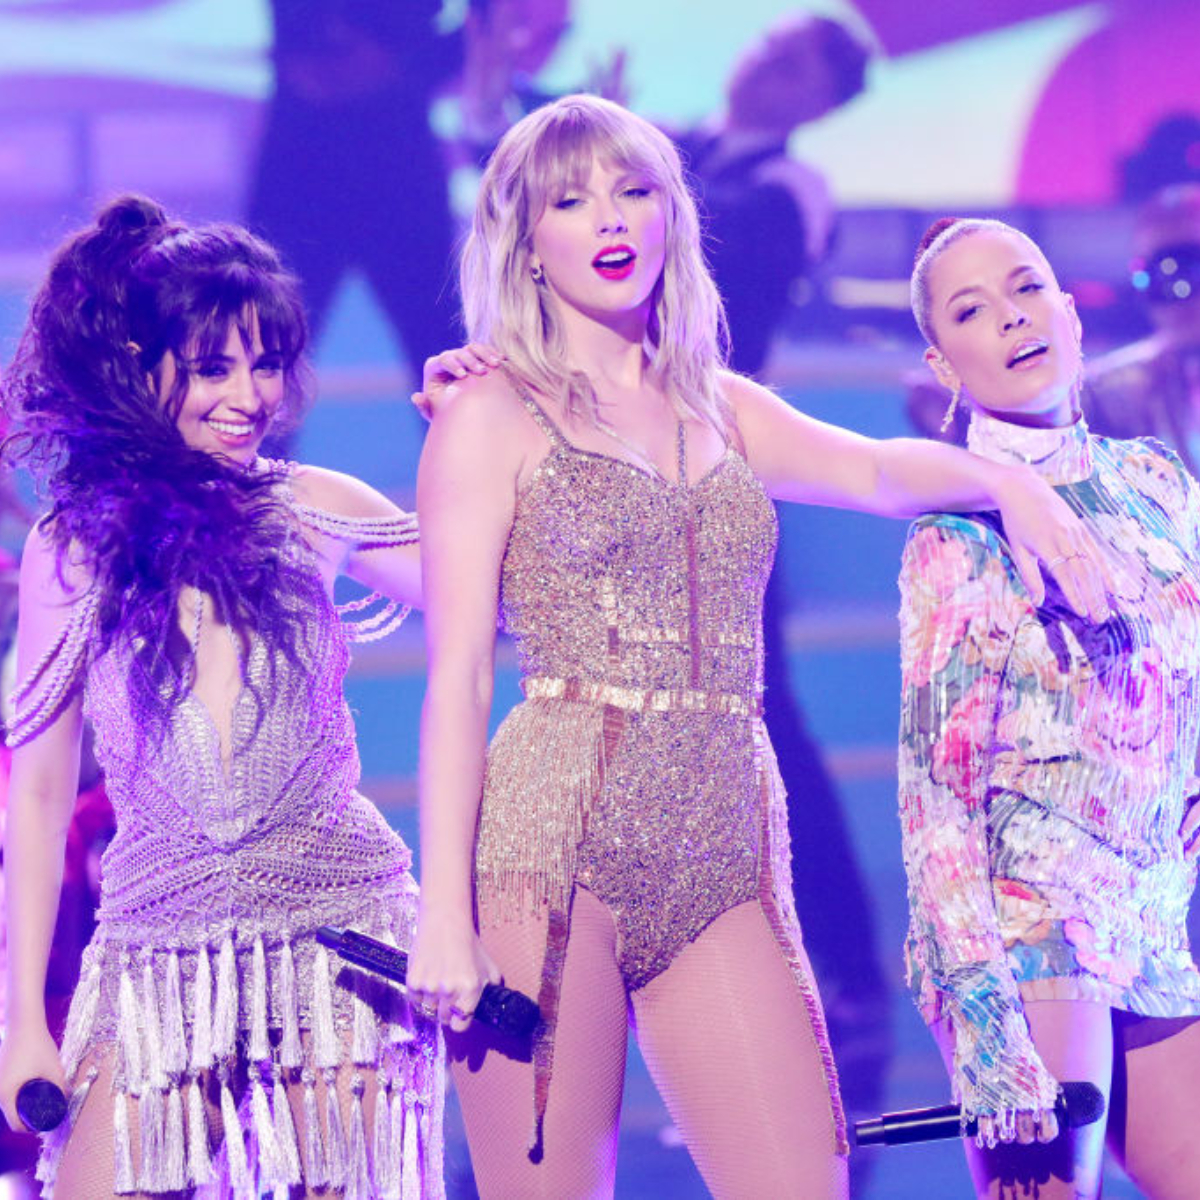 Taylor Swift's verdict on Camila Cabello's album Romance & Halsey's new song is all things love